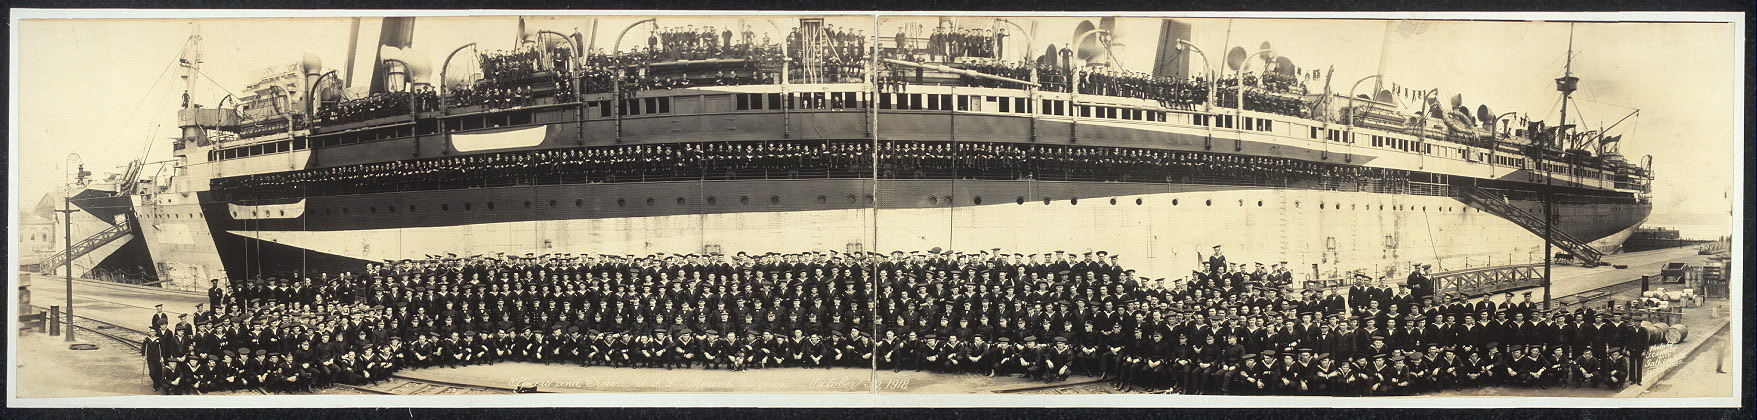 officers-and-crew-uss-mount-vernon-october-30-1918-loc_3006358188_o.jpg